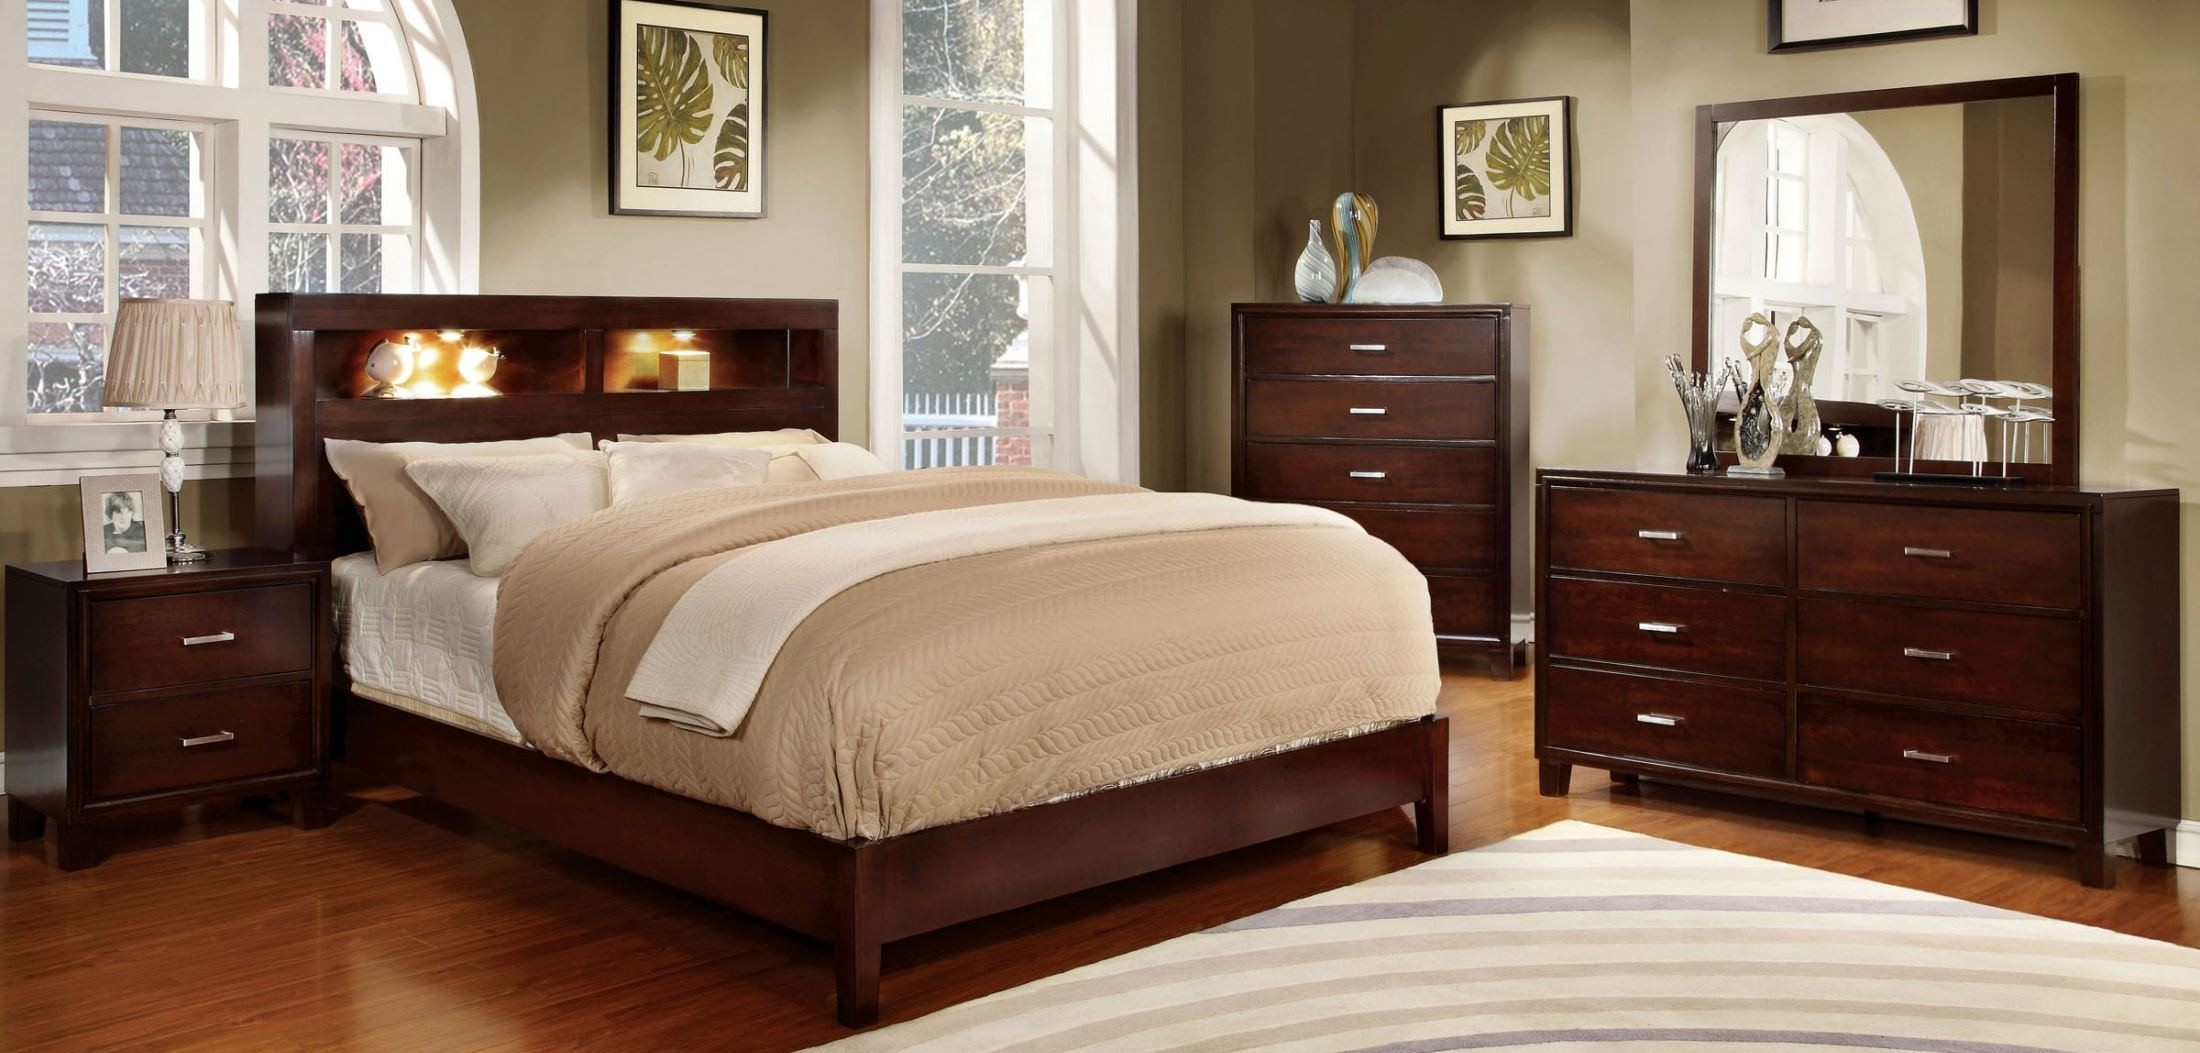 Gerico I Brown Cherry Bedroom Set From Furniture Of